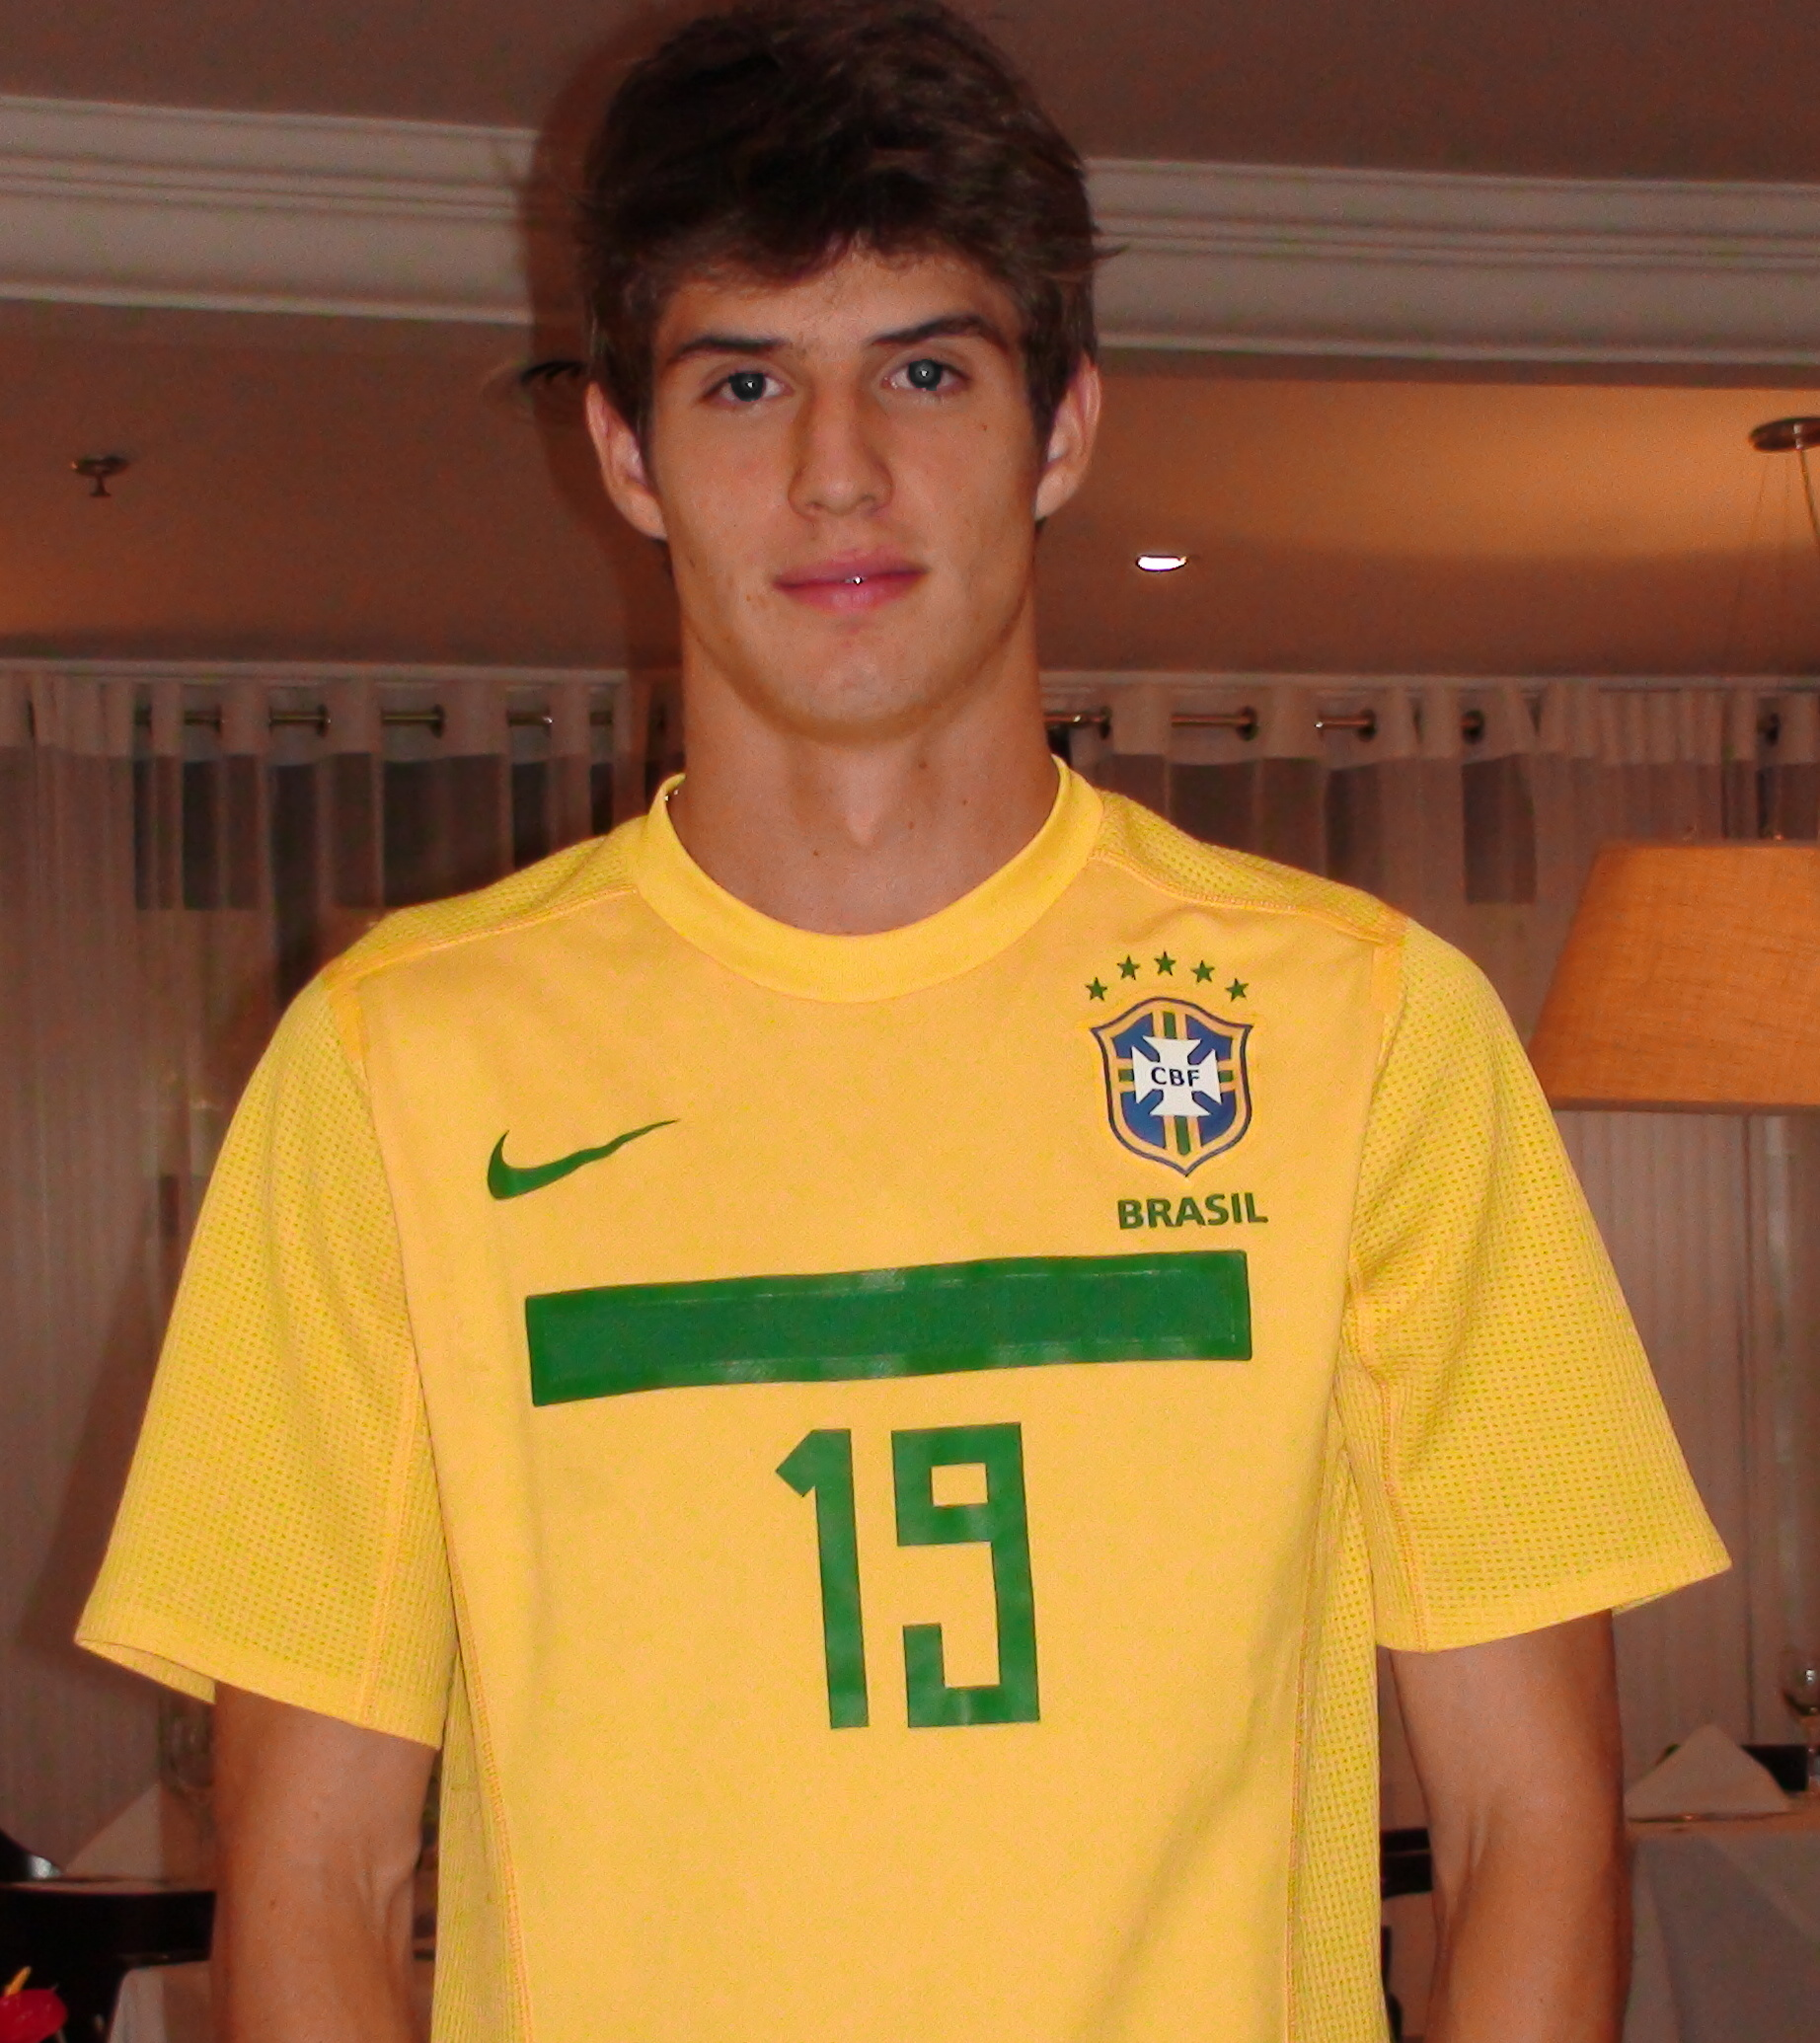 Lucas Soccer Player: Brazil Squad For U-17 World Cup Mexico 2011